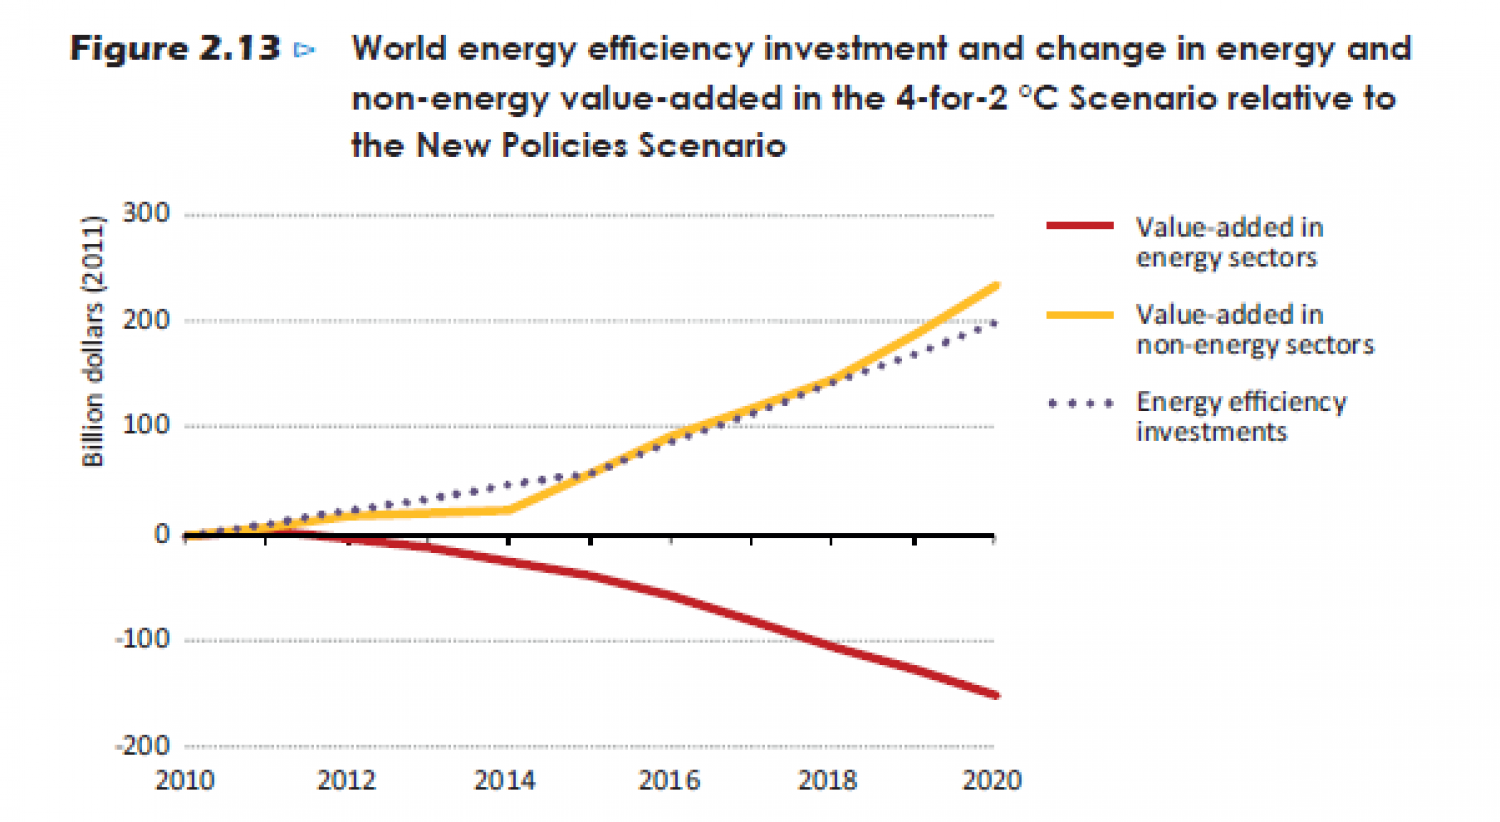 World energy efficiency investment and change in energy and non-energy value-added in the 4-for-2°c Scenario Infographic